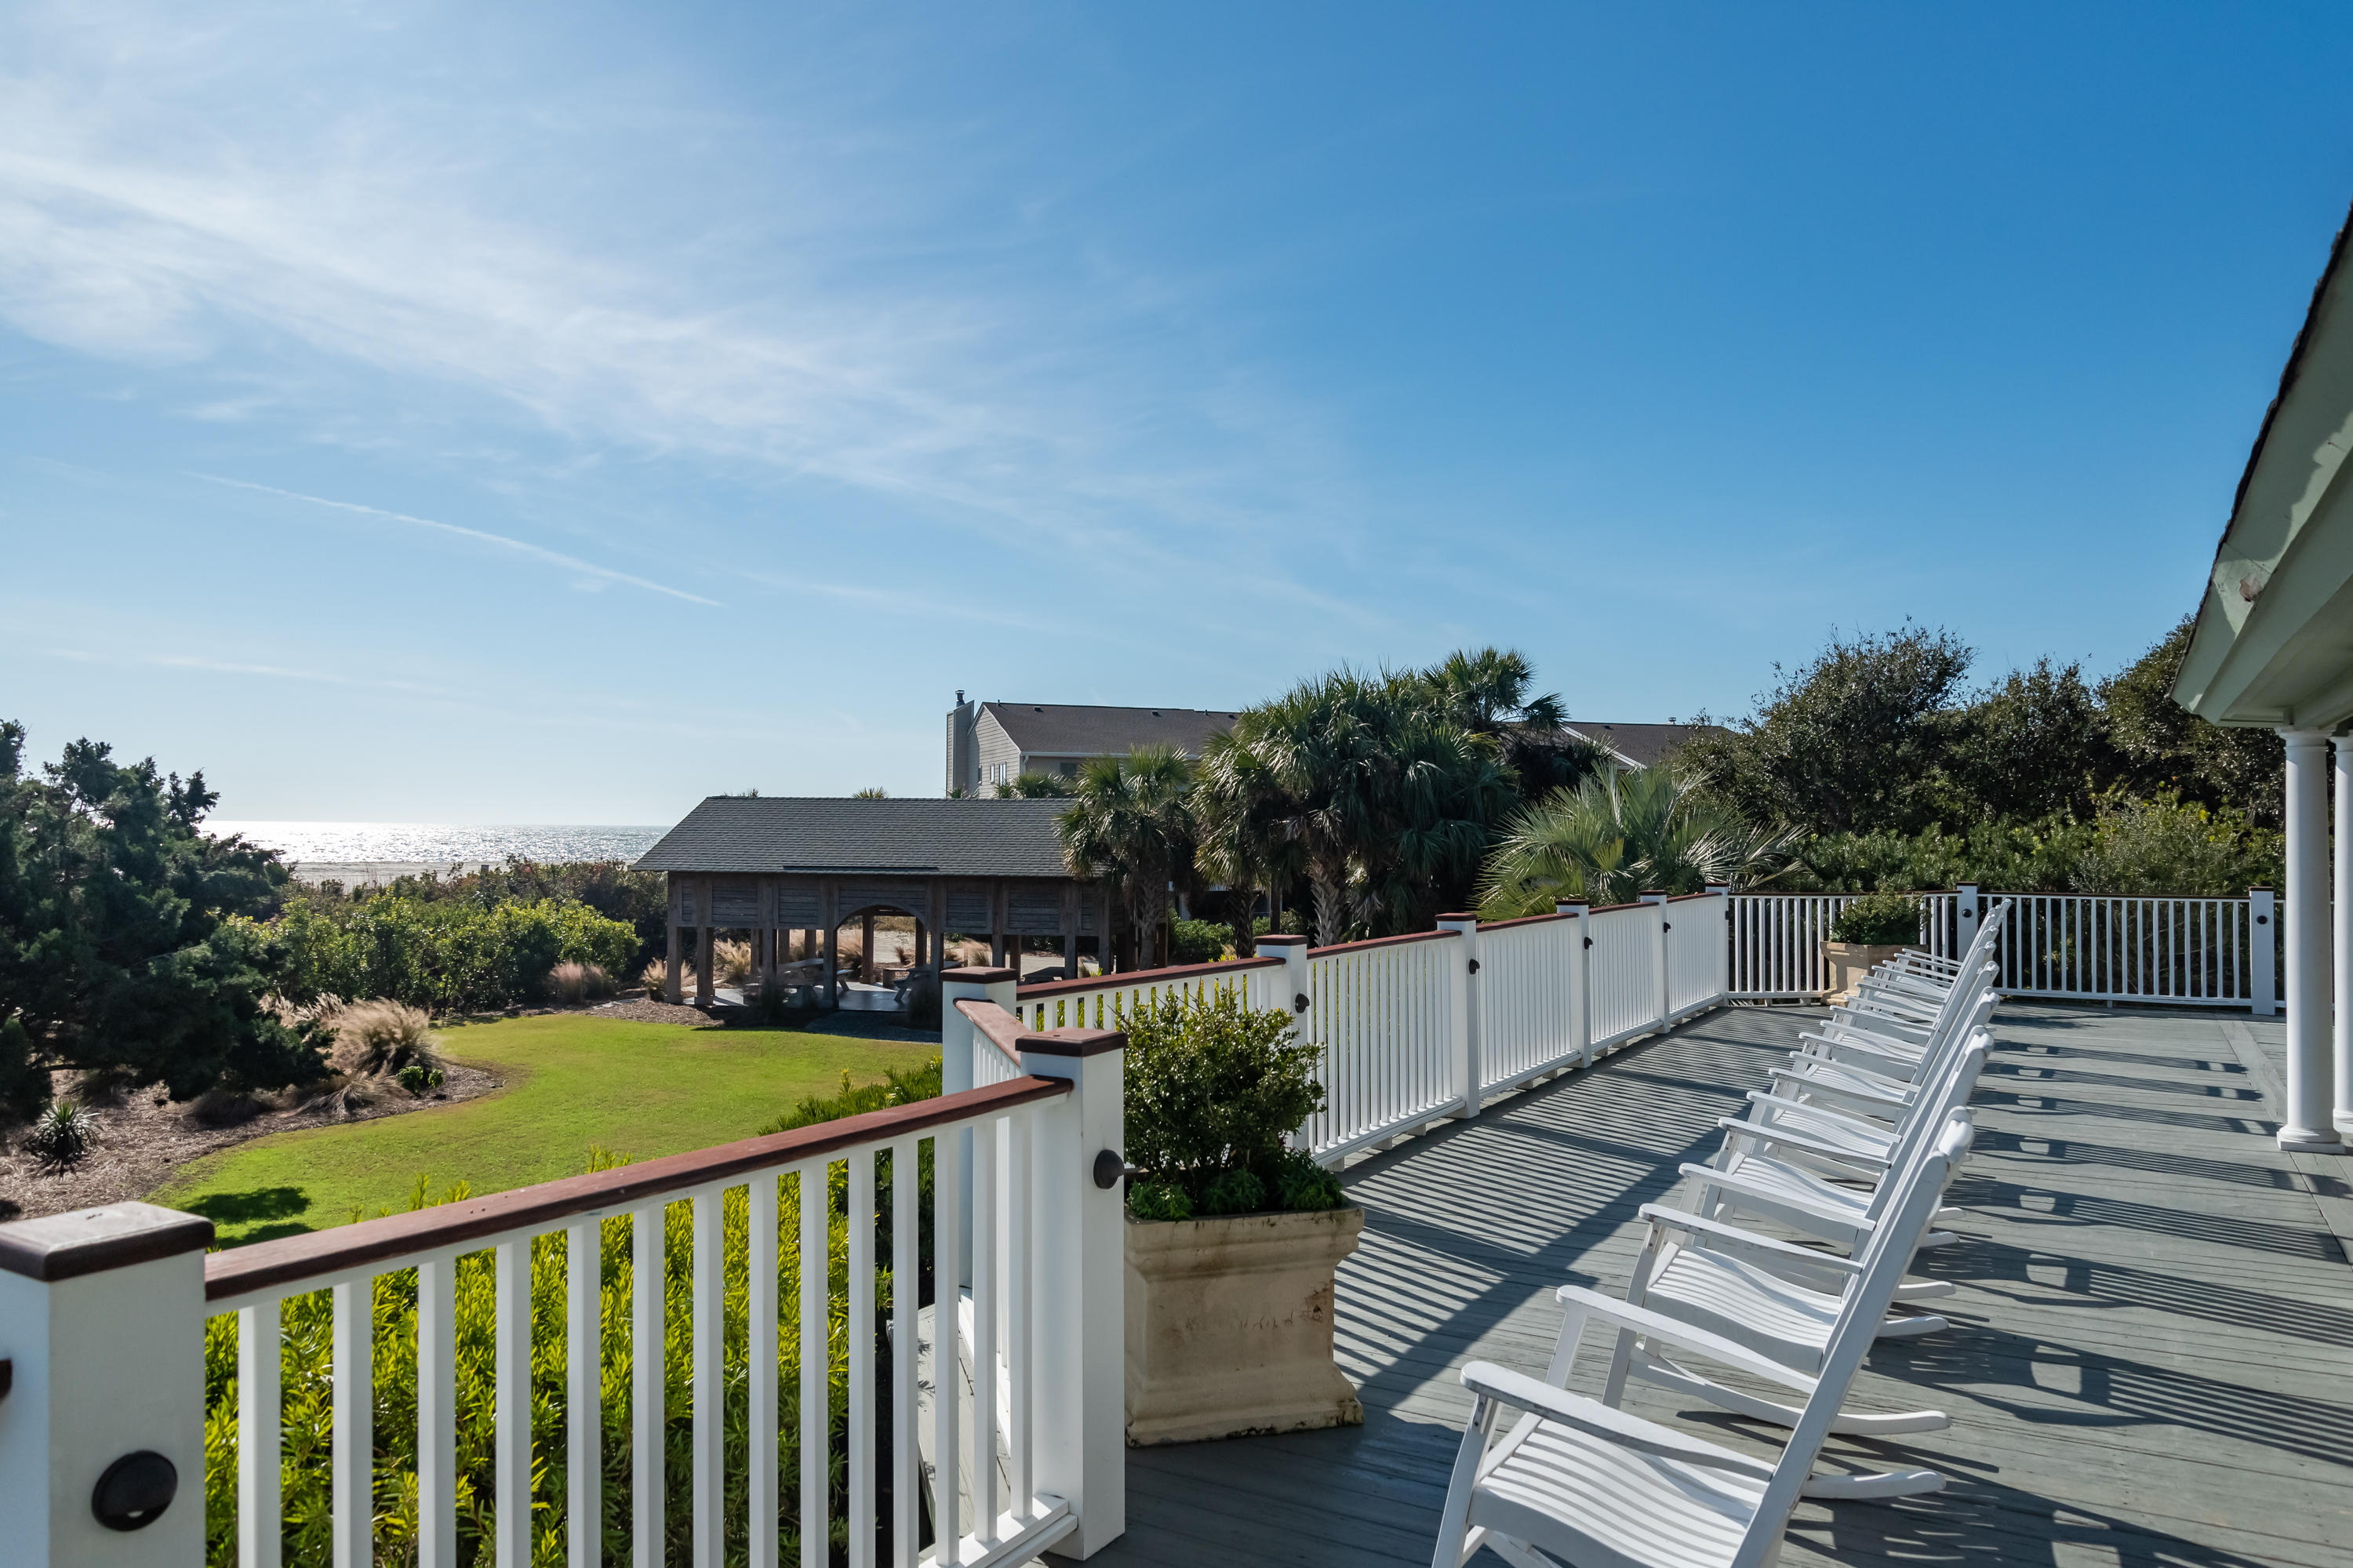 Wild Dunes Homes For Sale - 105 Village At Wild Dunes, Isle of Palms, SC - 16